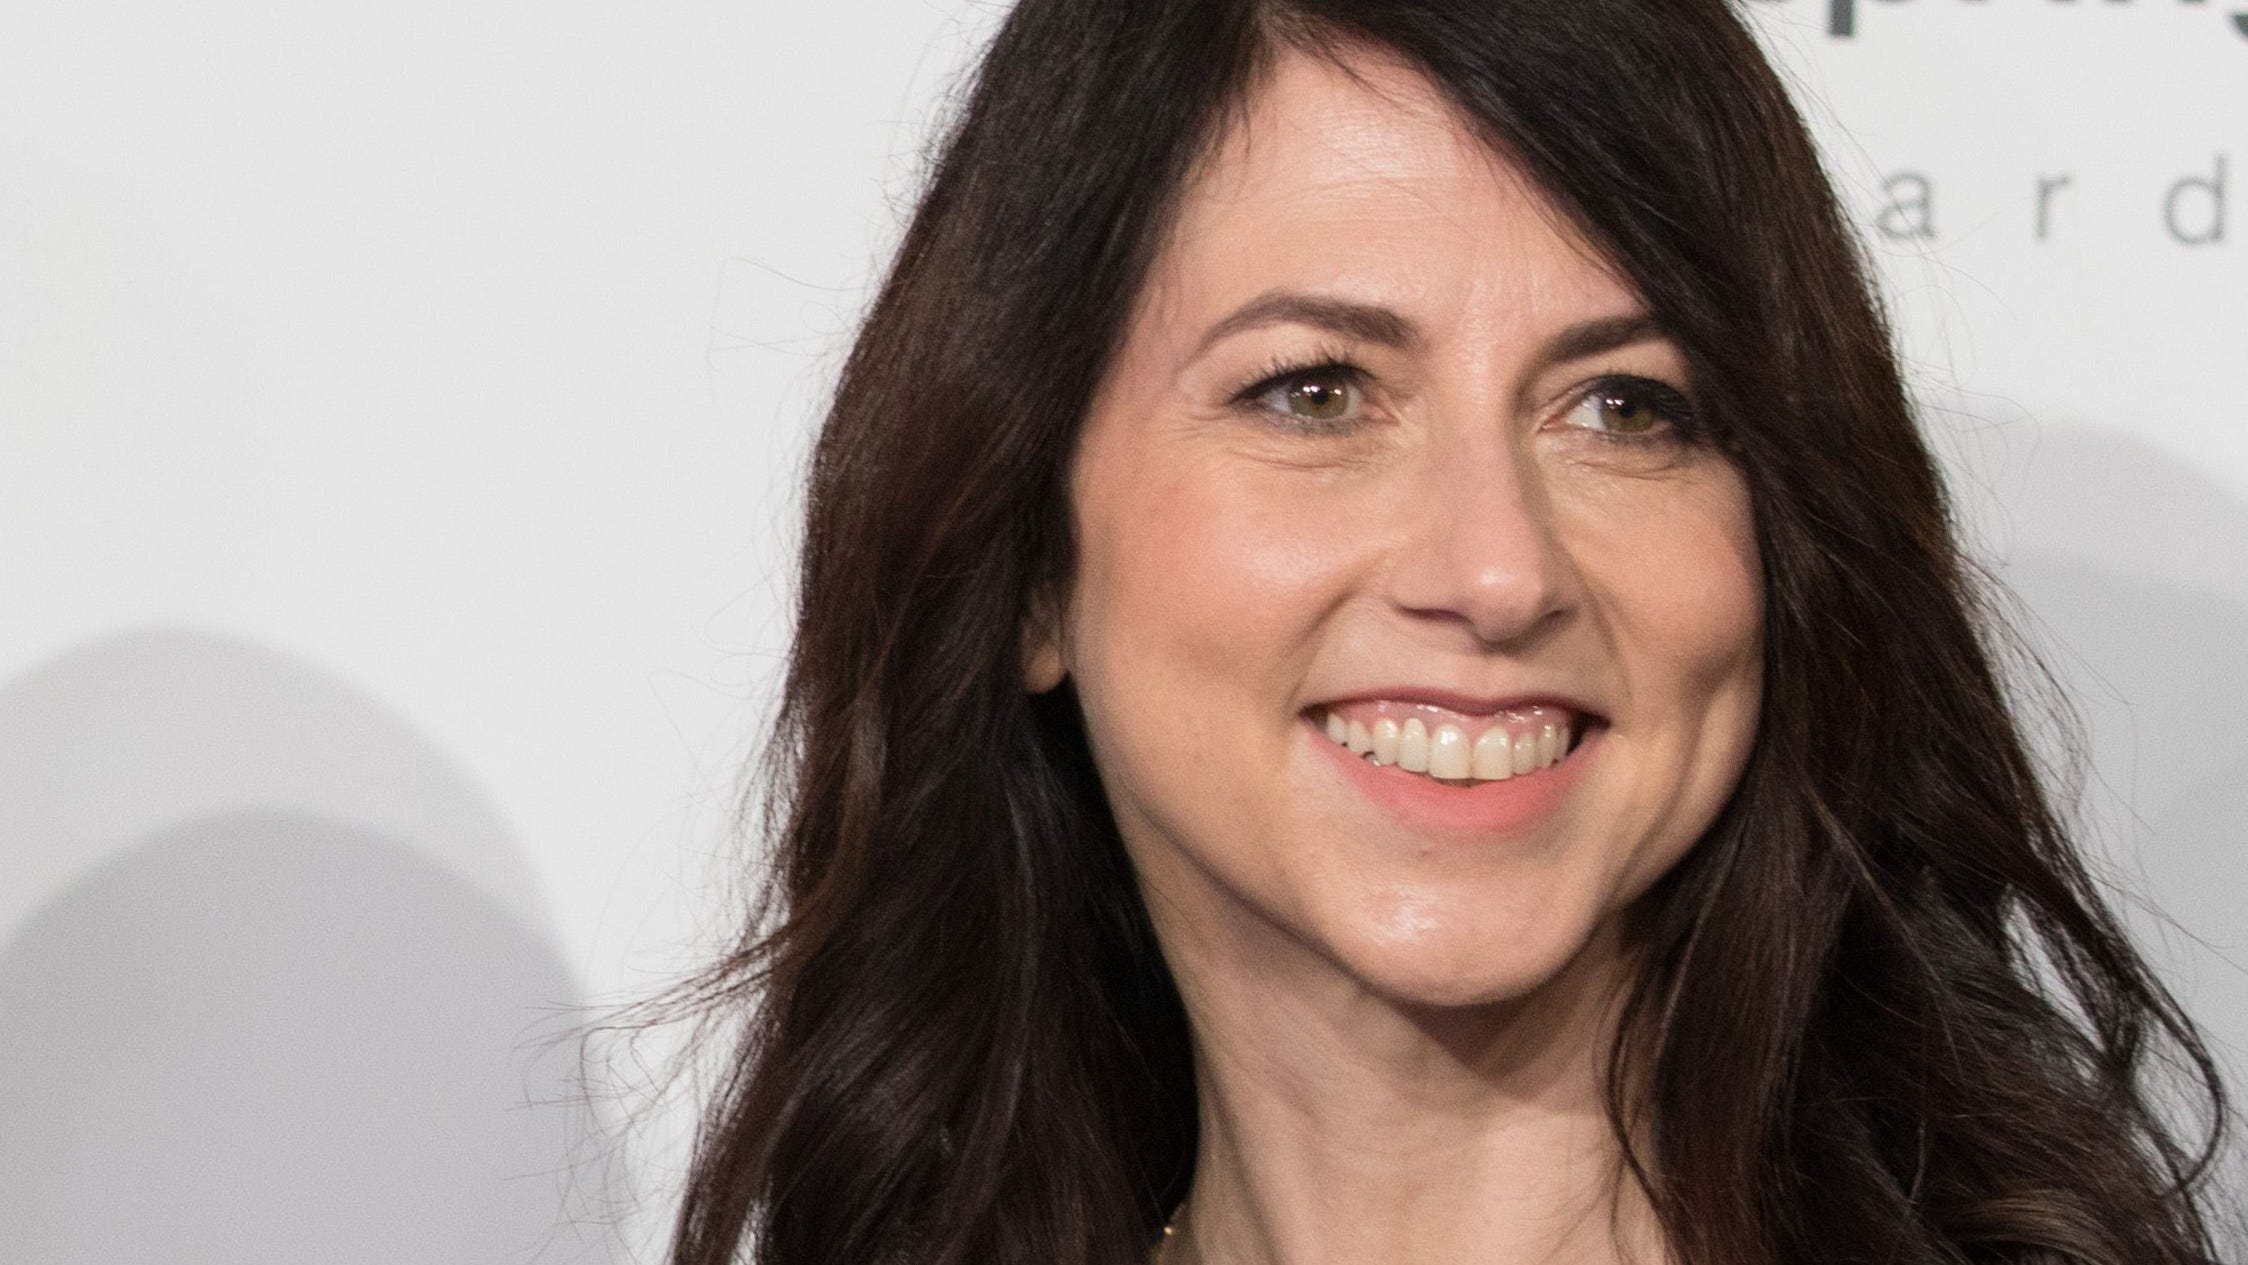 Who is MacKenzie Bezos? She may soon be world's richest woman